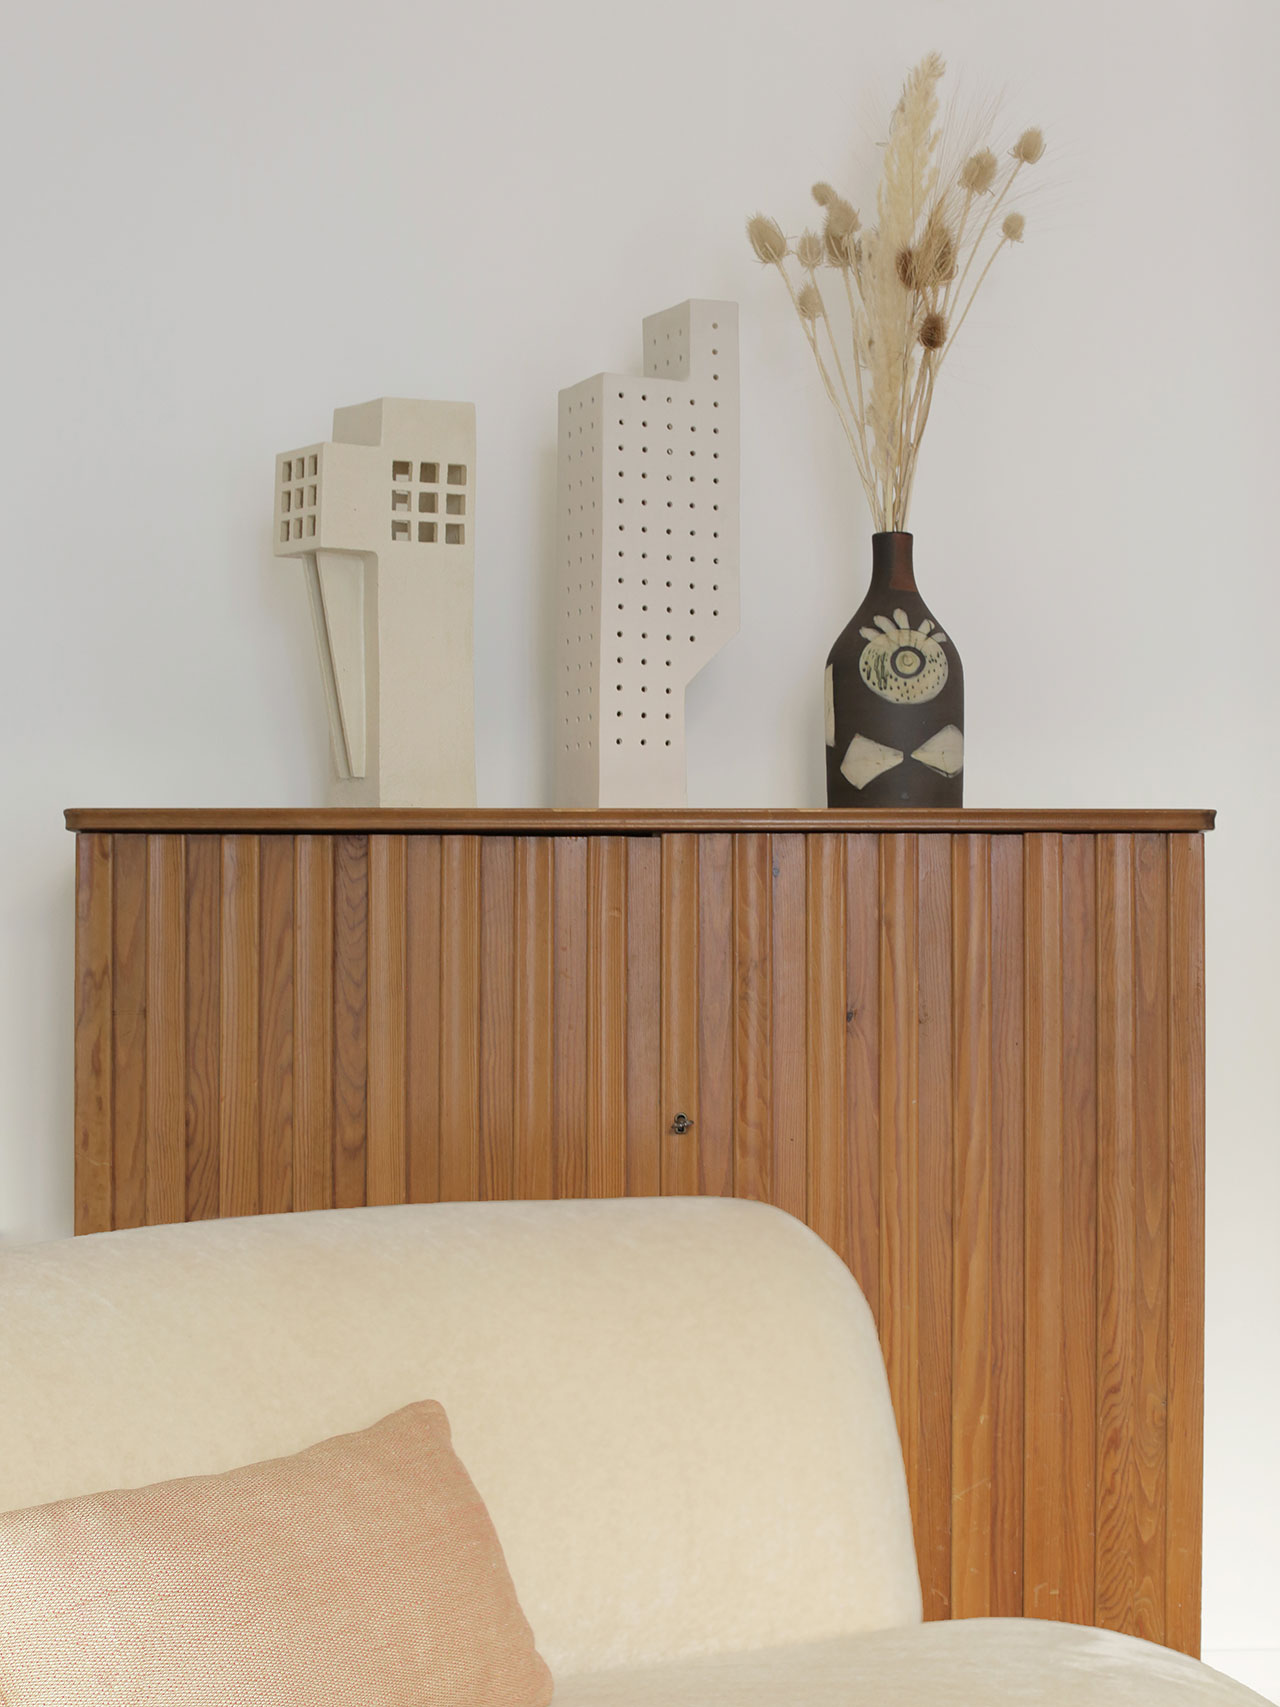 Cabinet in pine by Goran Malmvall (1917–2001), 1950. Photography by Damien de Medeiros.